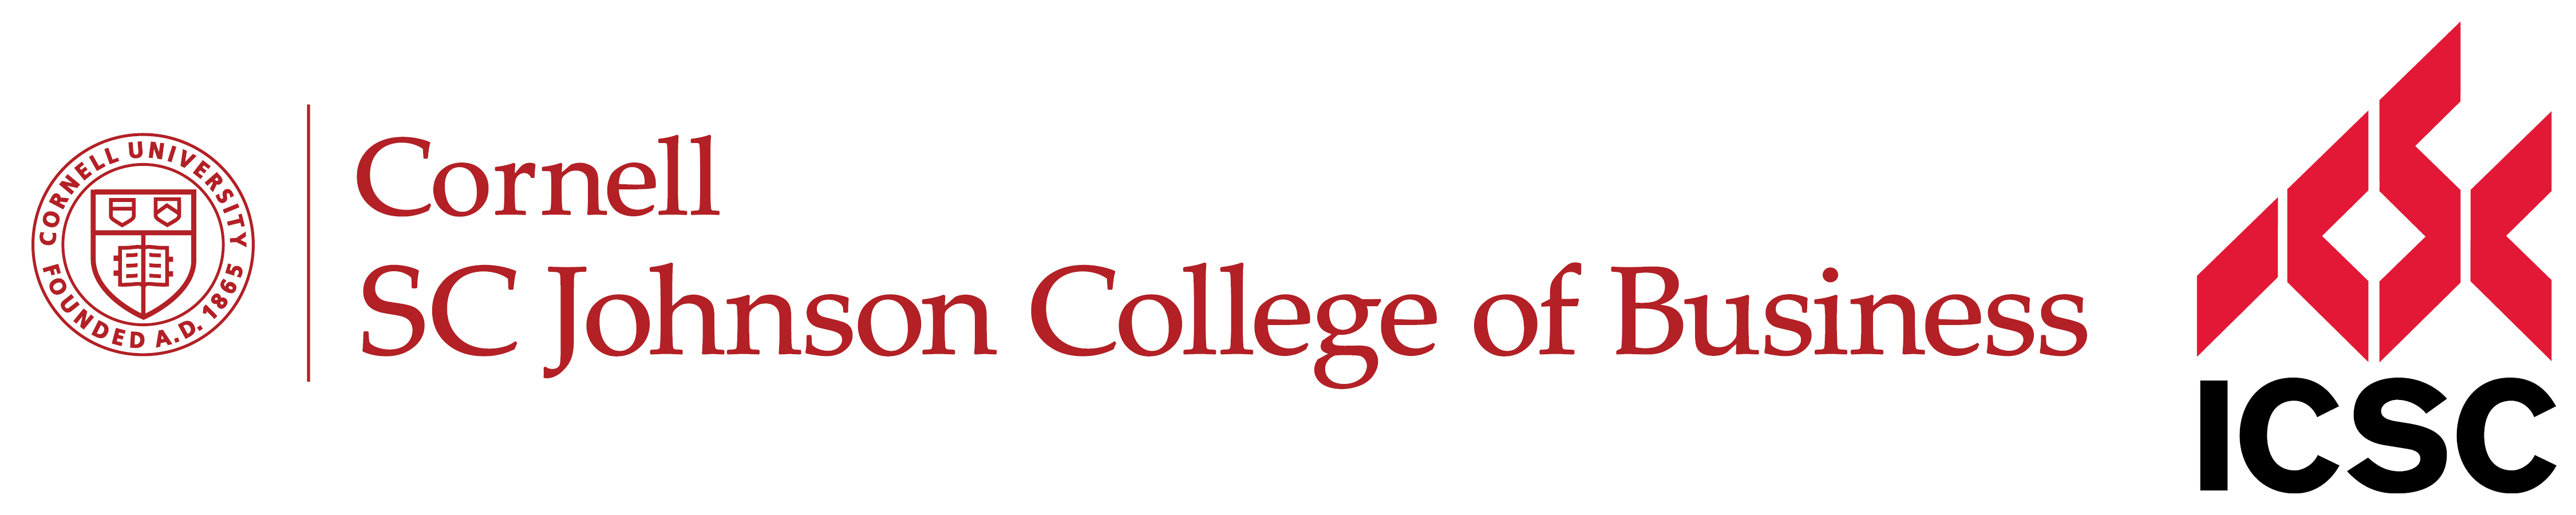 SC Johnson College of Business and ICSC Logo